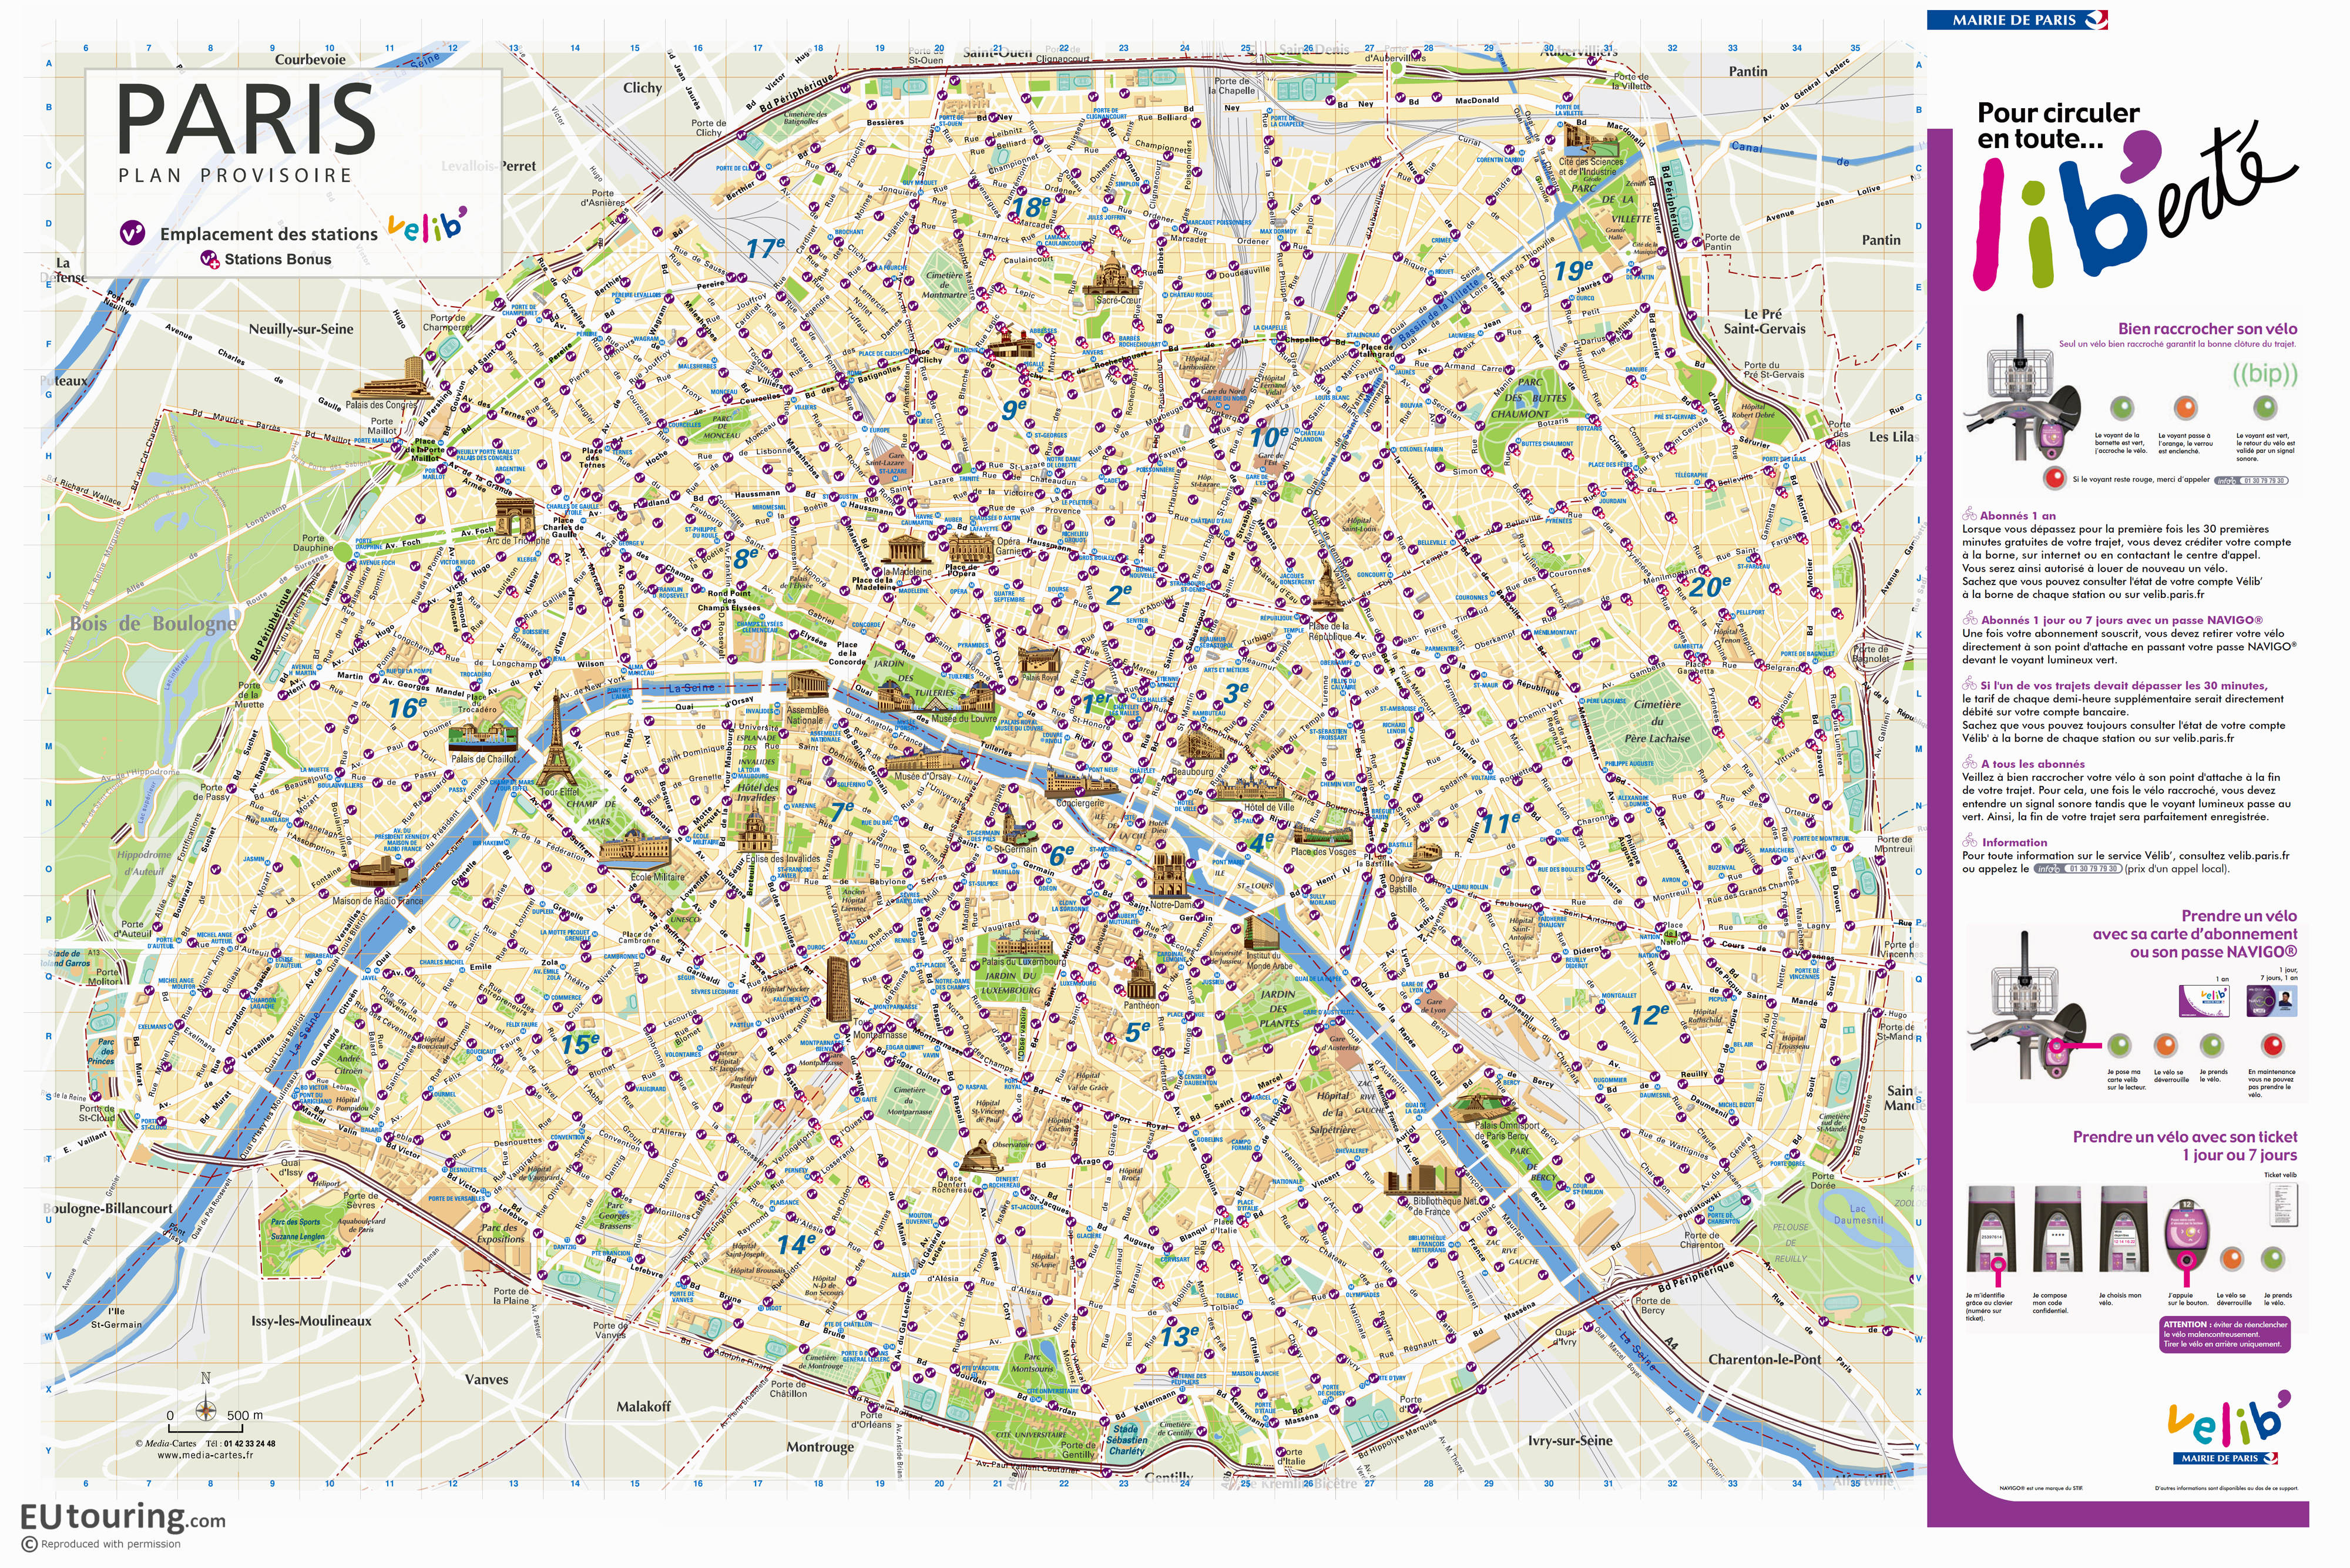 Paris Velib station maps in PDF and image file formats on